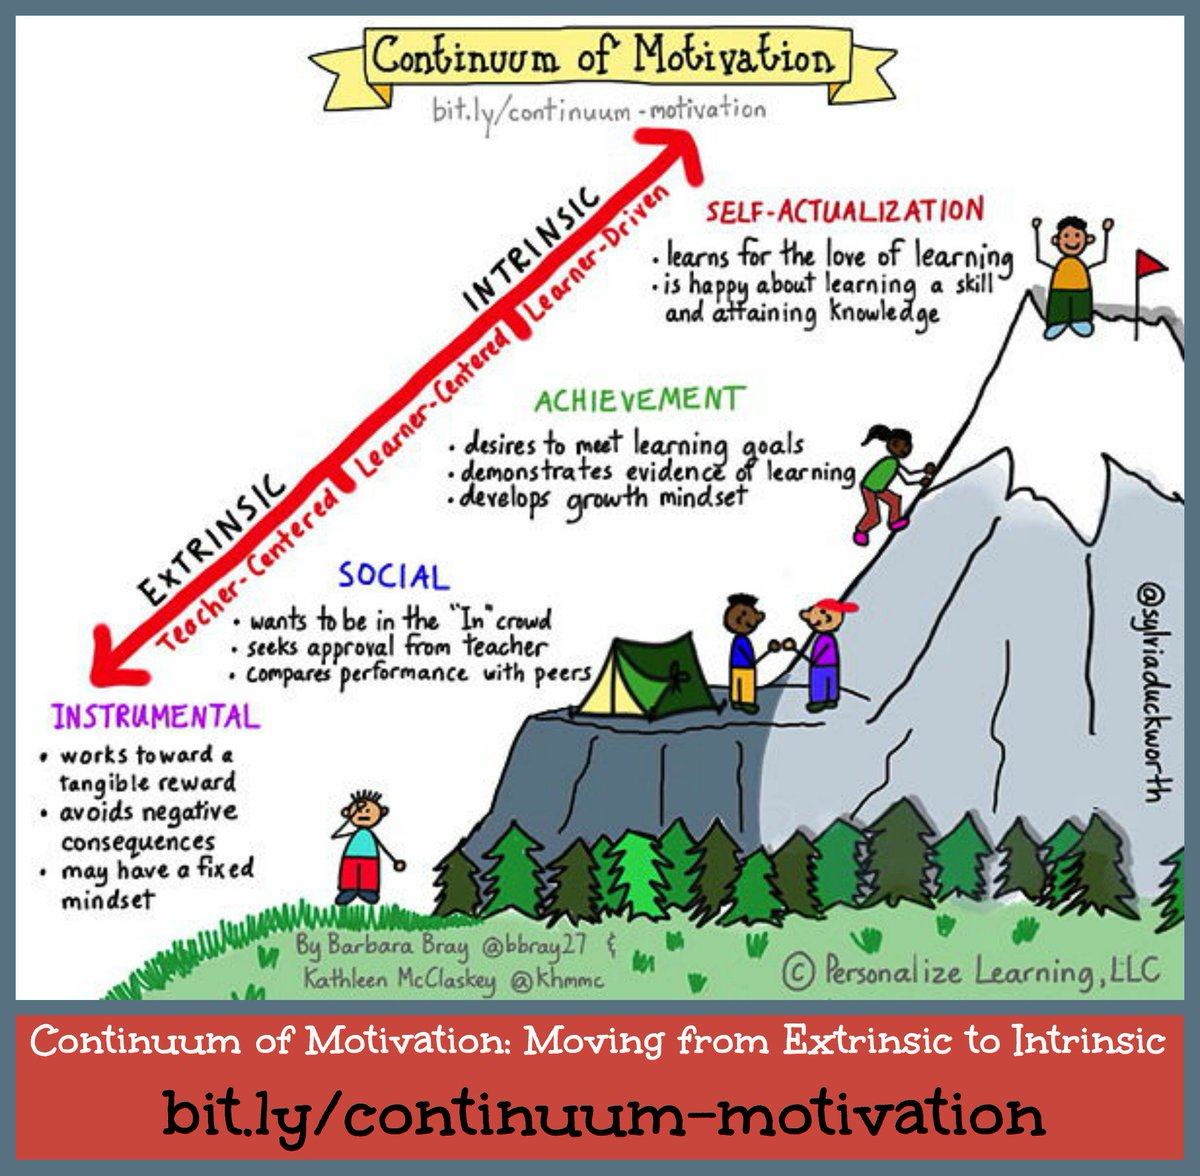 A must read post for learners & educators: Continuum of Motivation https://t.co/dHiO6GfWki #catholicedchat https://t.co/XxqRhWmNng